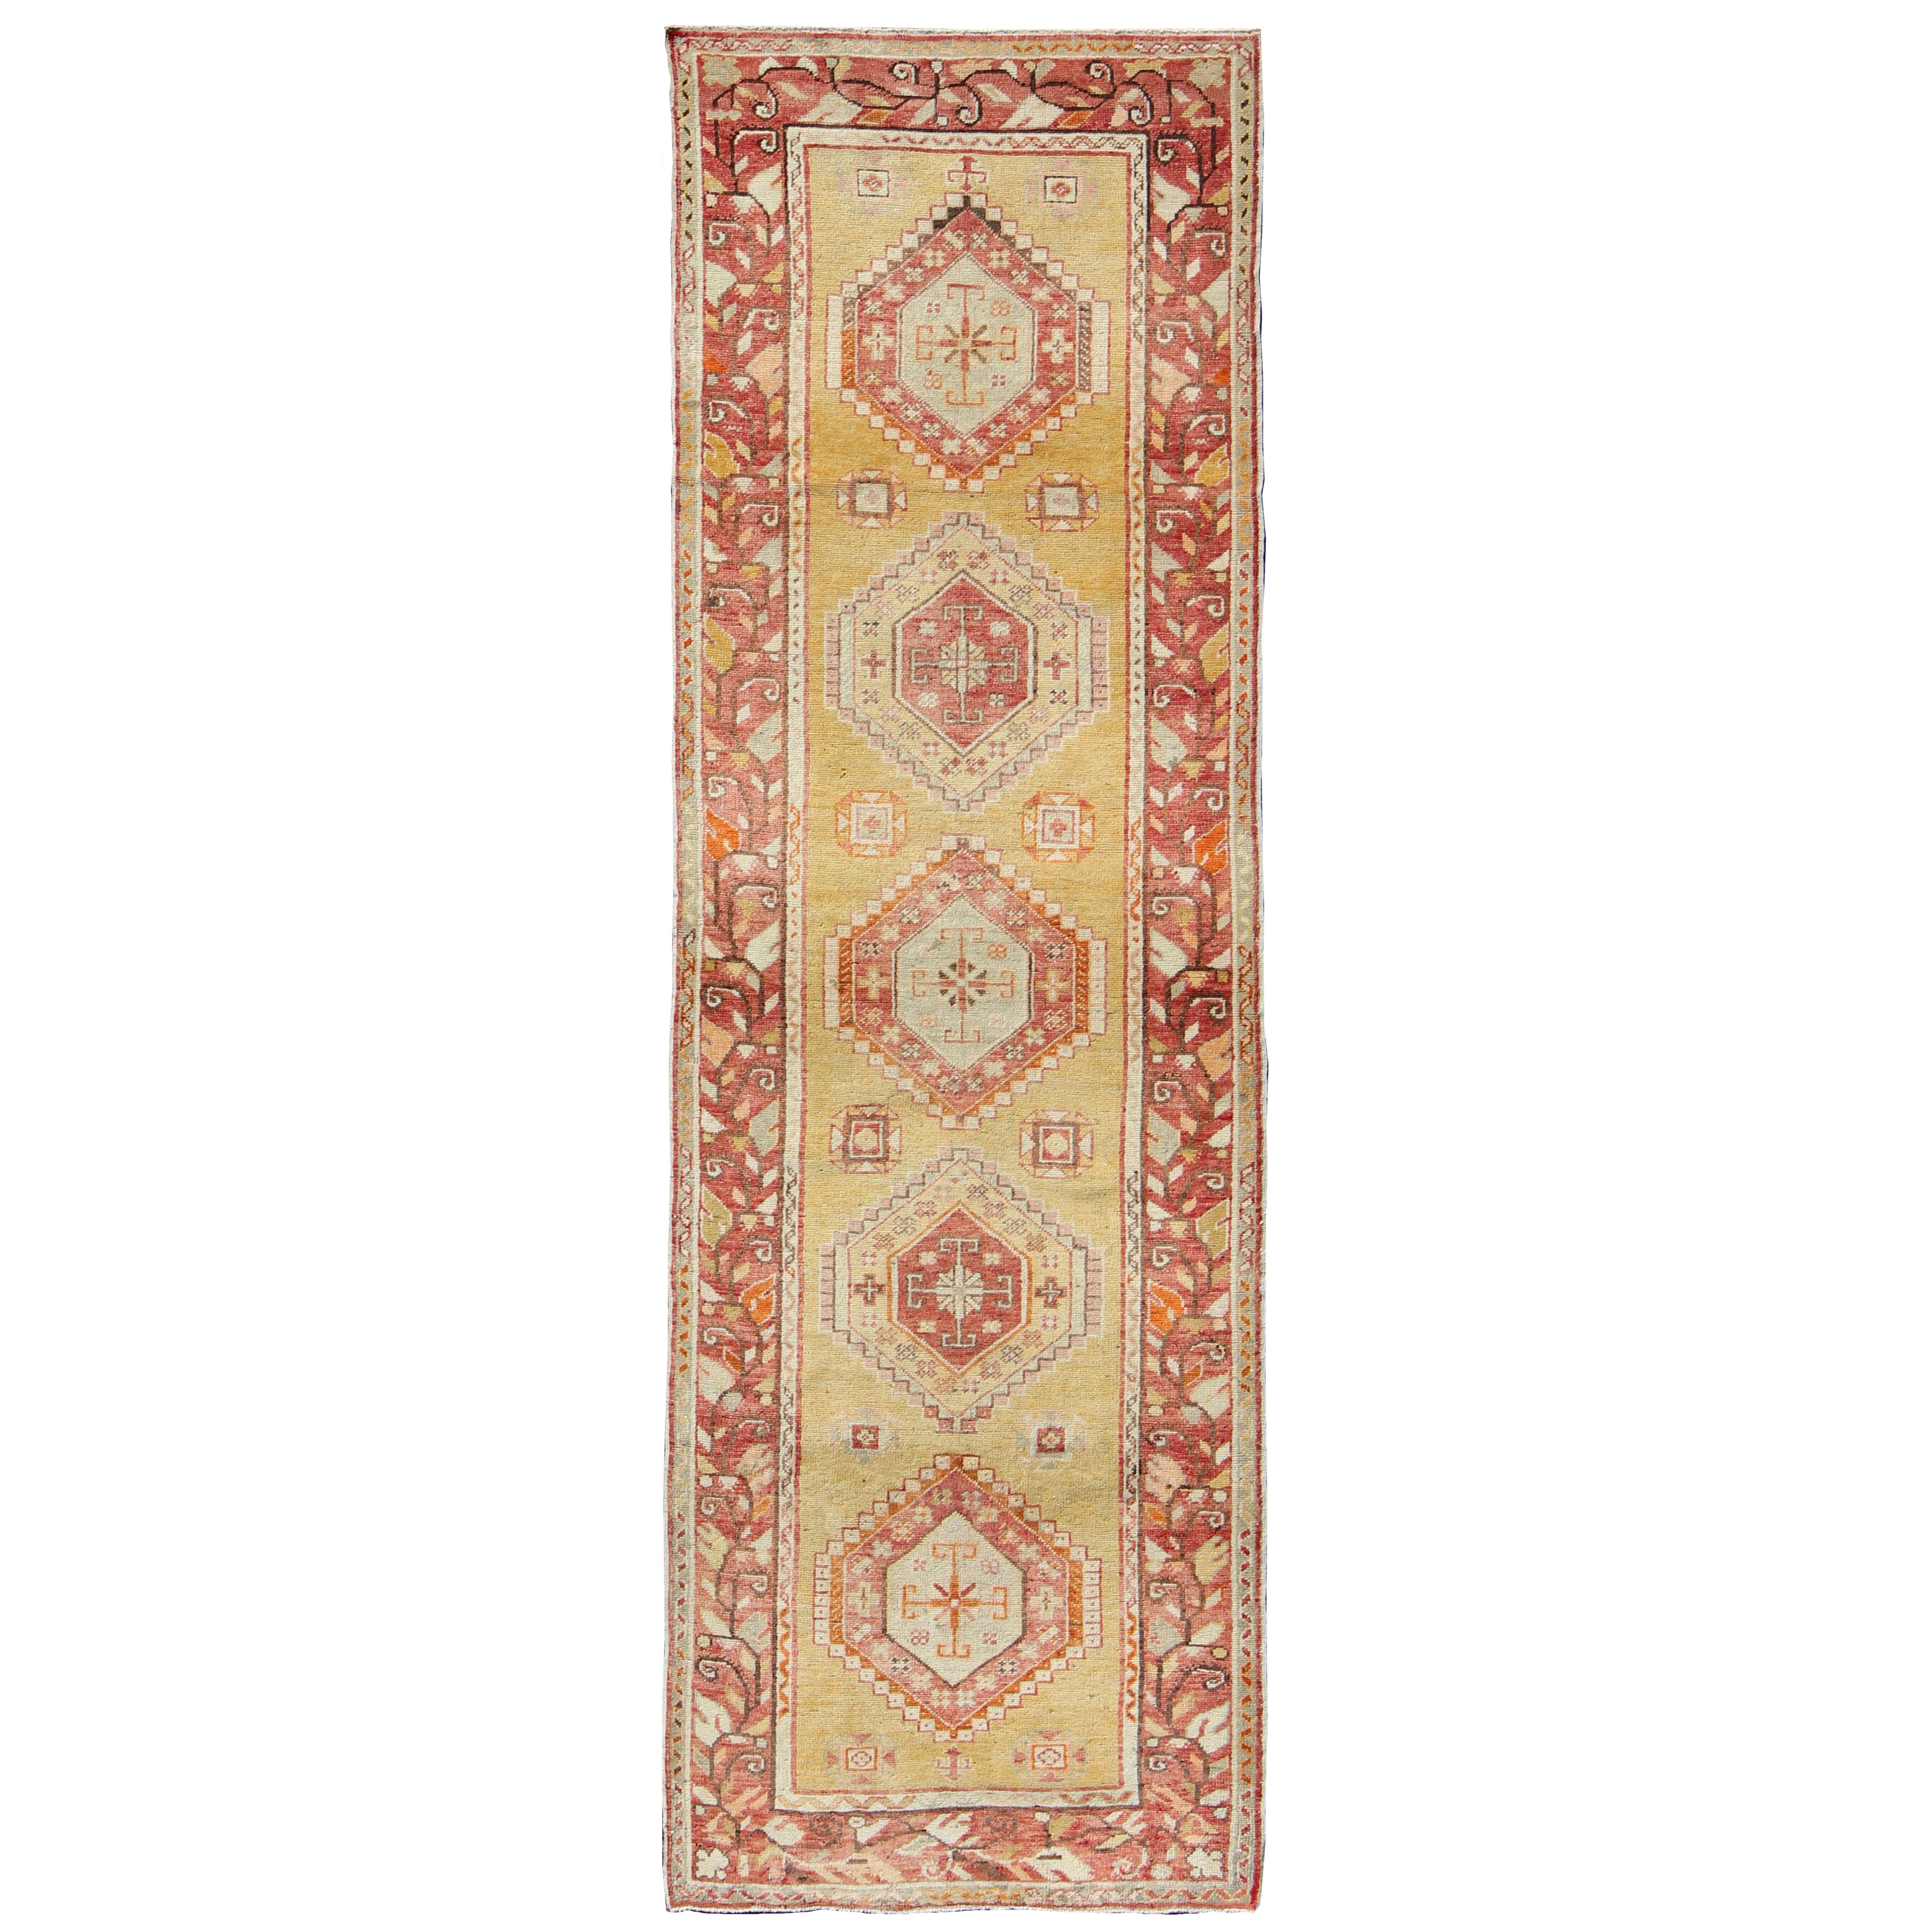 Antique Turkish Oushak Runner with Geometric Medallions in Yellow Background